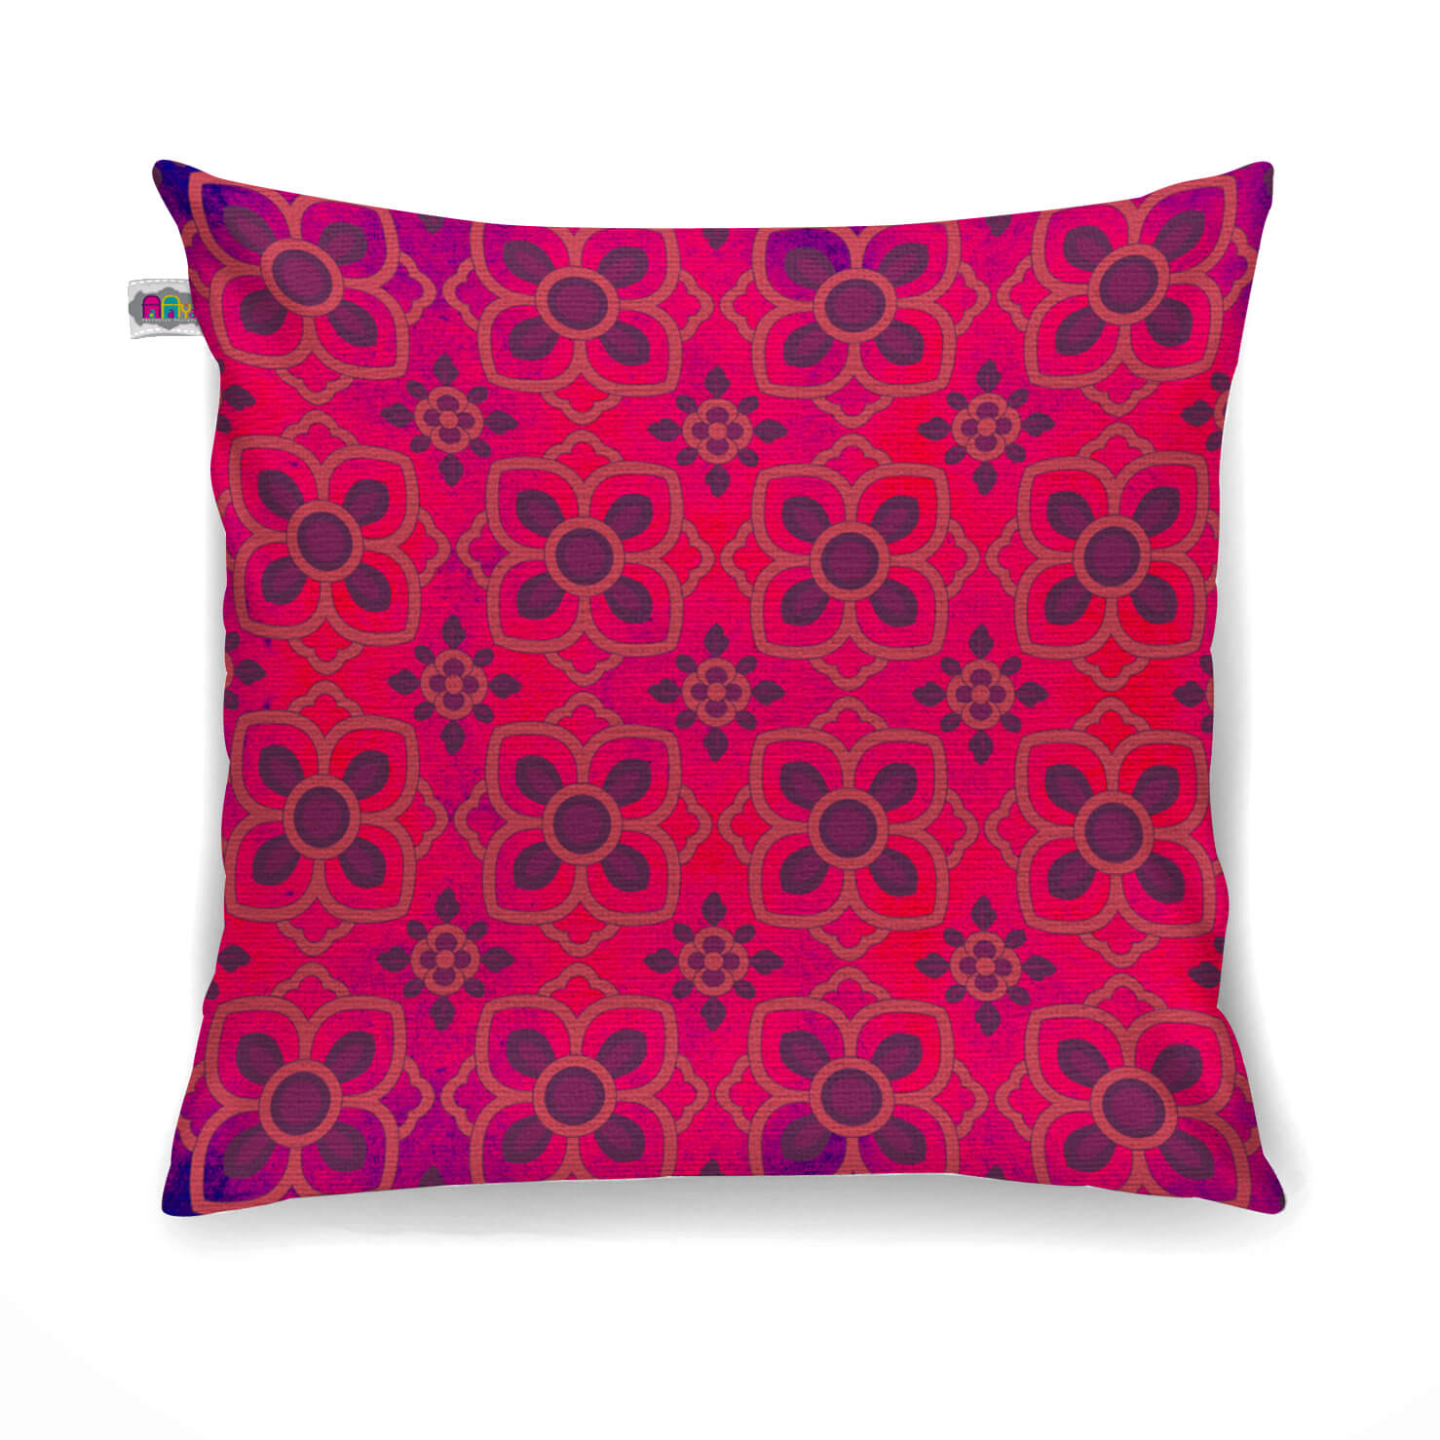 Enchanting Flower Motif Cushion Cover Set of 2